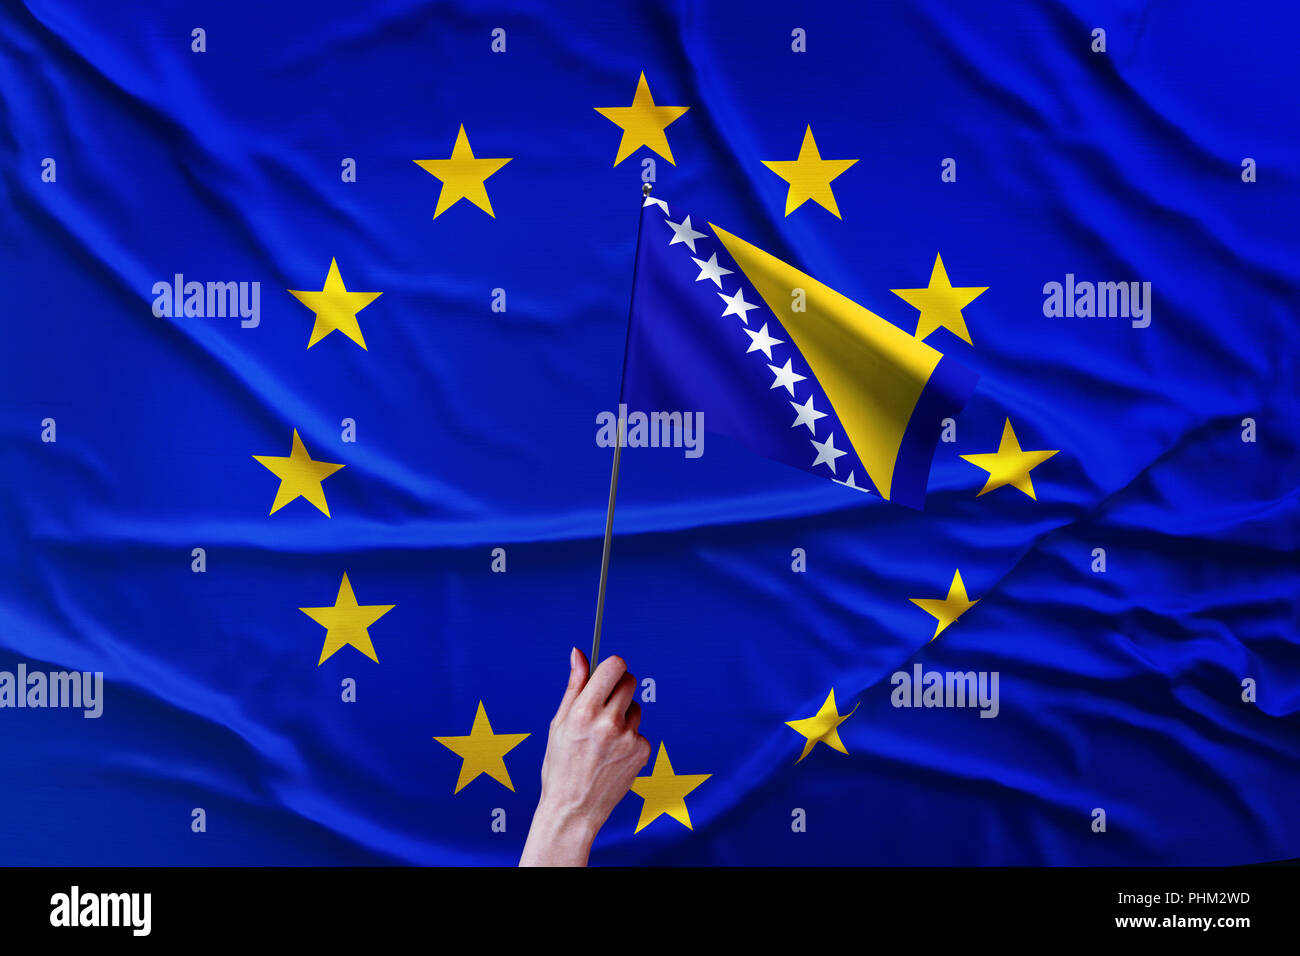 Flag of the European Union and Bosnia And Herzegovina - Stock Image